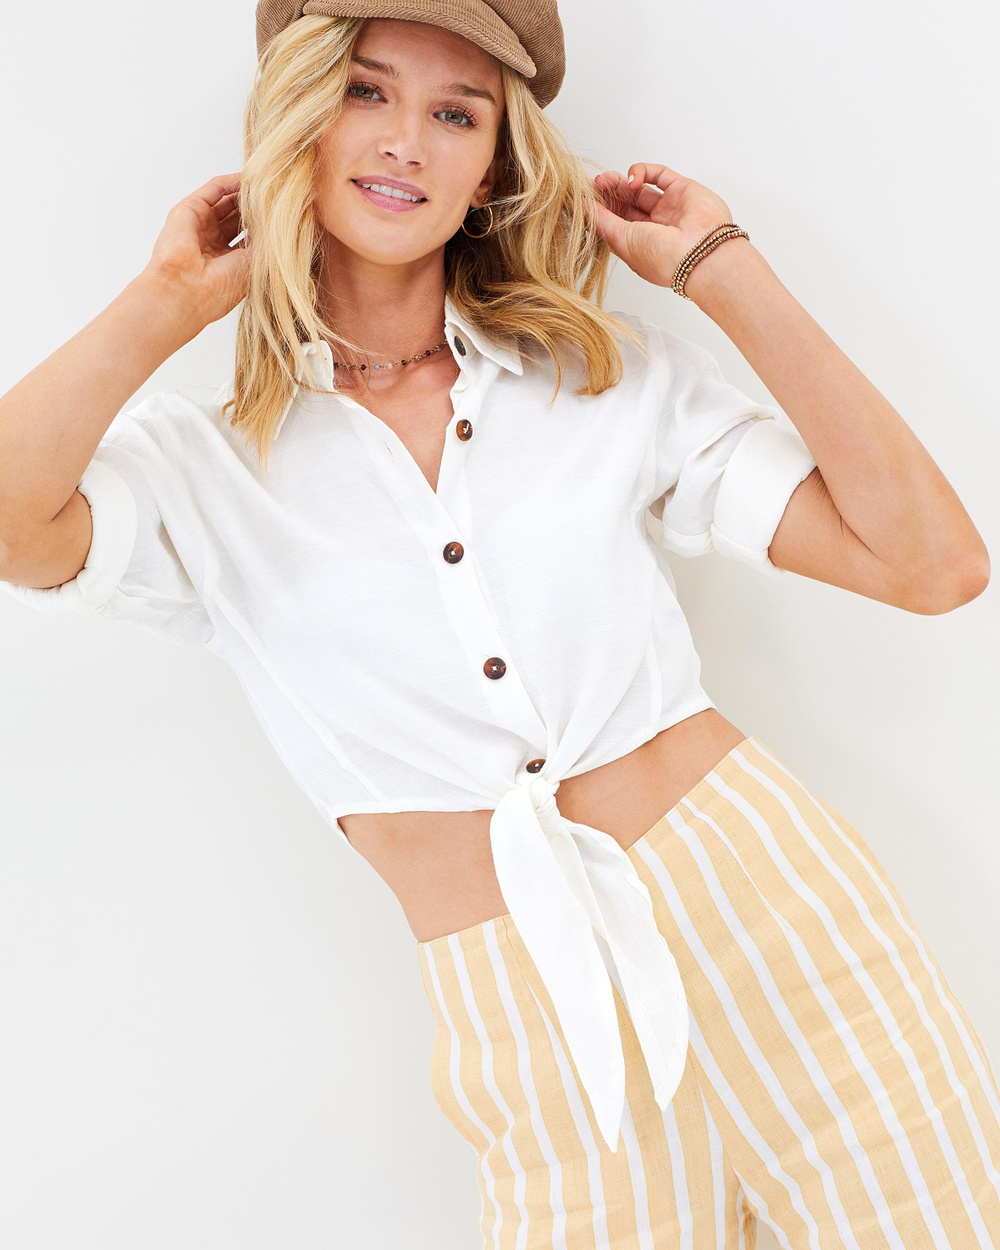 Faithfull Beau Rivage Top Cropped tops Plain Off-White Textured Beau Rivage Top